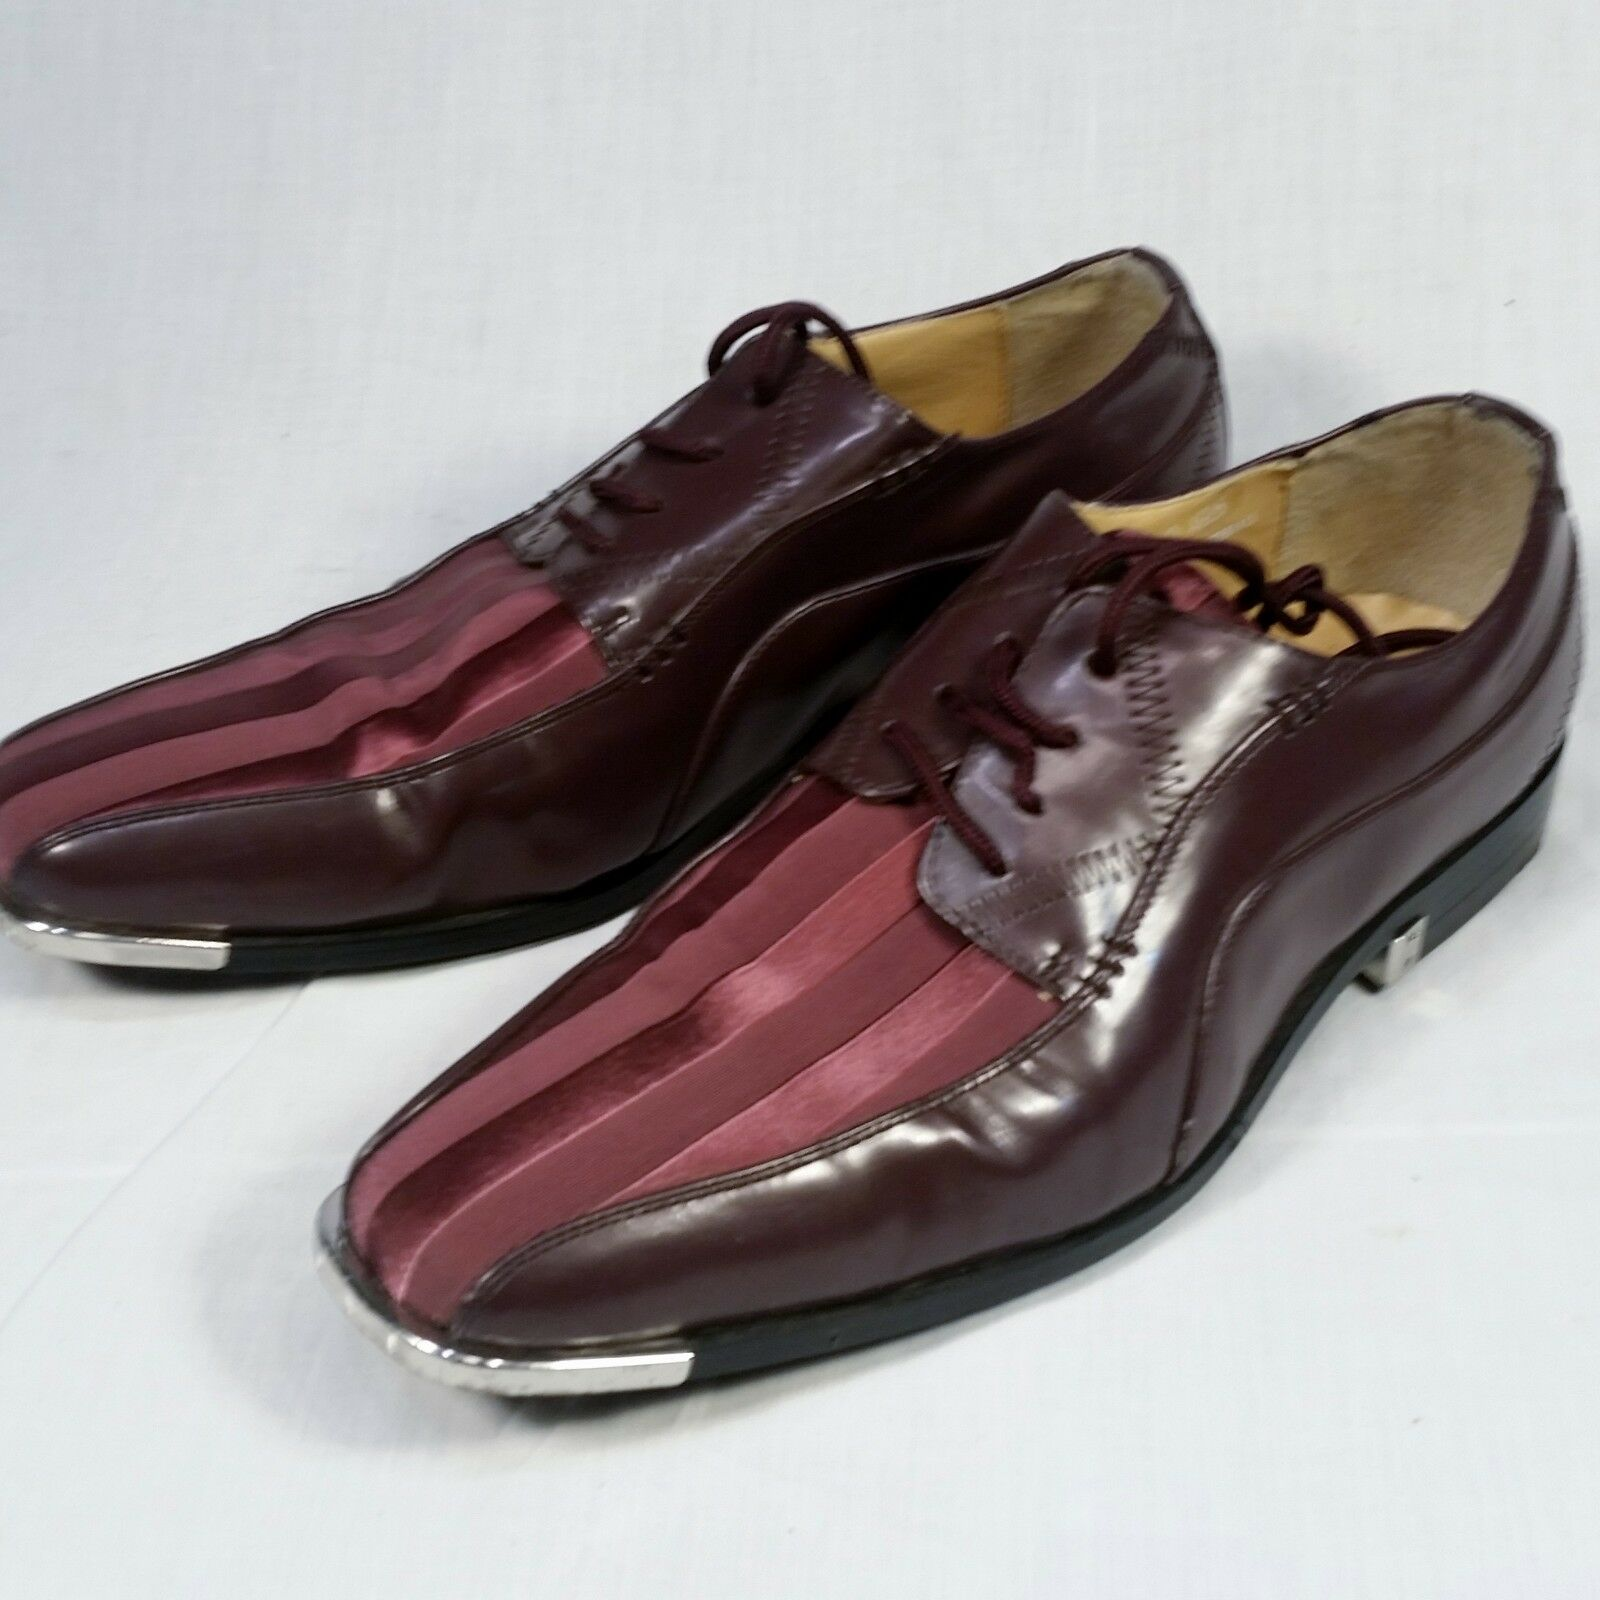 Expressions by RC Purple shoes Mens 11 Plum Strips Metal Tips Rockabilly